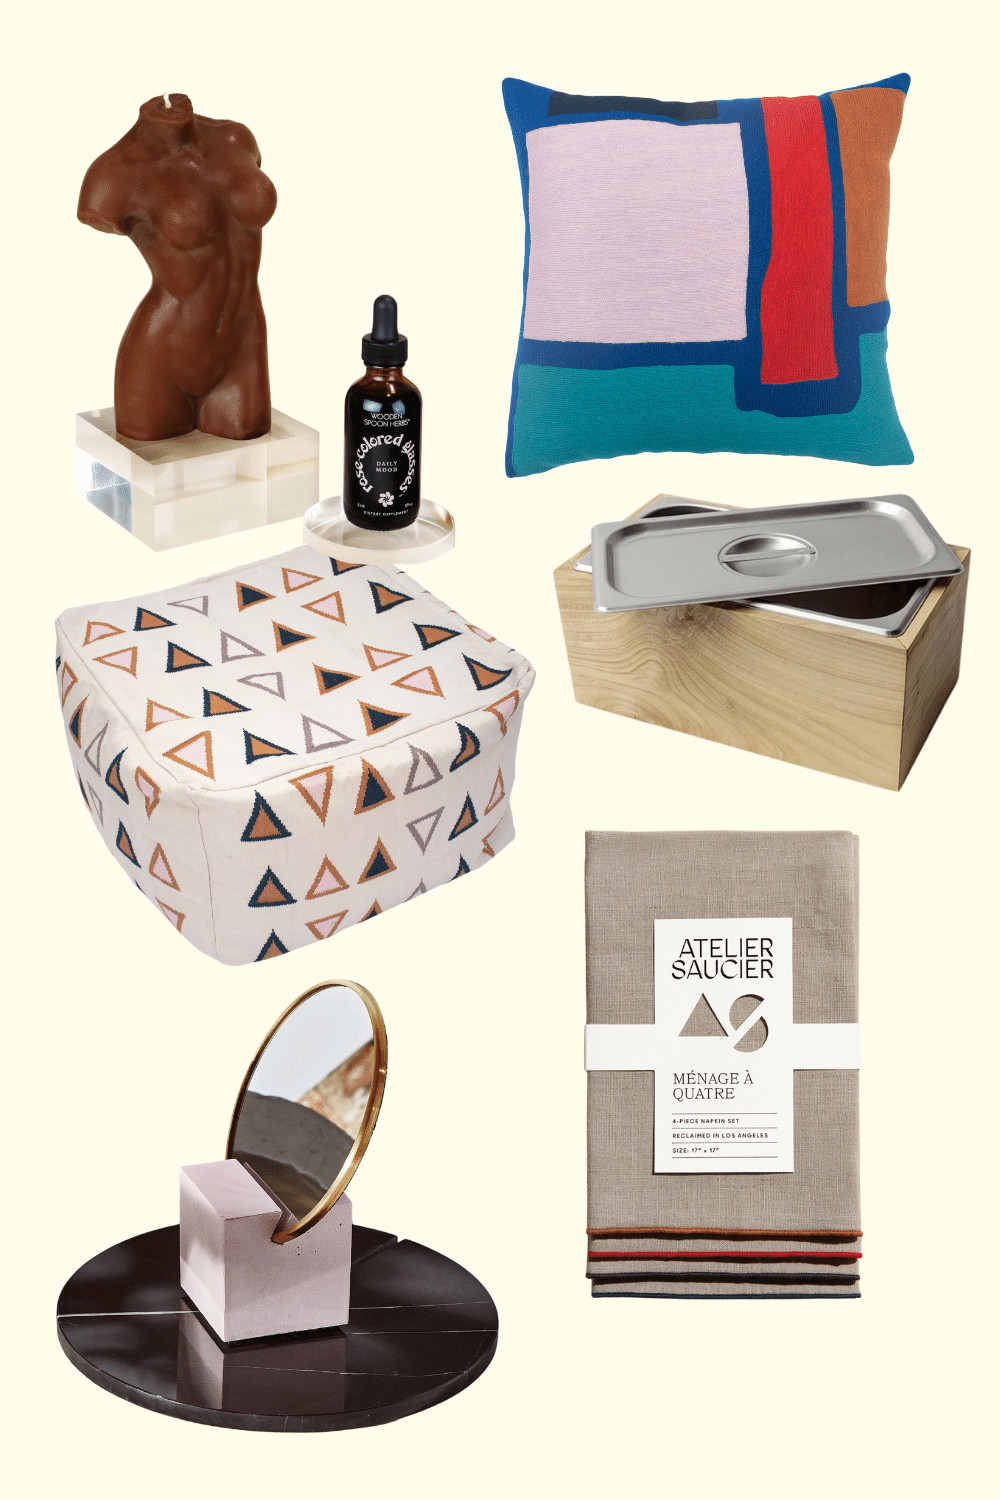 A flatlay collage full of awesome sustainable gift ideas from small, woman and BIPOC owned small businesses. There's a candle, an adaptogenic tincture, a cozy pillow, a bespoke compost bin, recycled deadstock linens that are super chic, really creative home decor accents like a vanity mirror made from recycled rubber and a organic cotton beanbag. It's the gift guide of a lifetime!